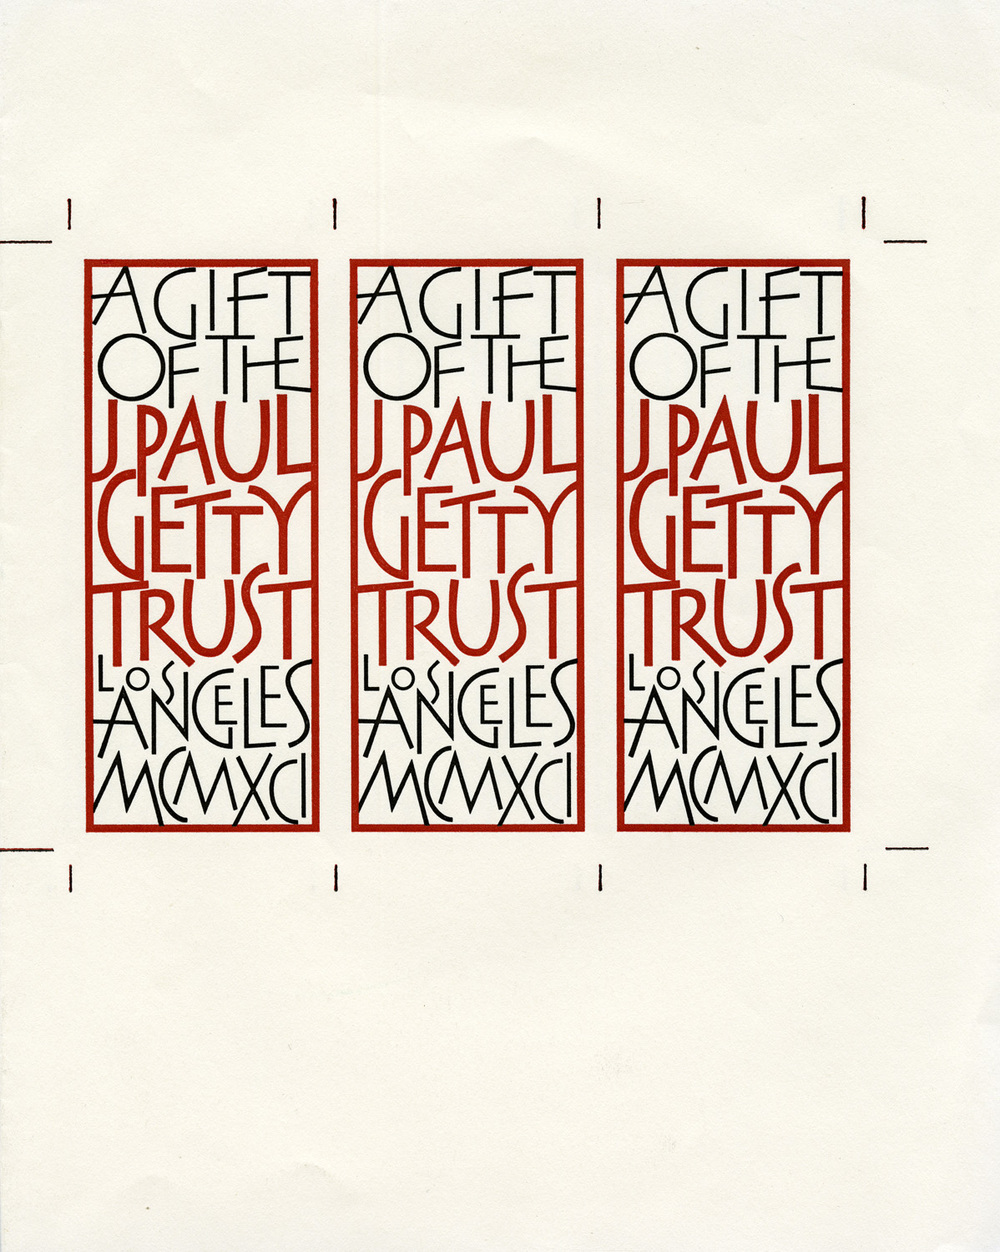 Bookplate for the J. Paul Getty Trust. Design and lettering by Christopher Stinehour.